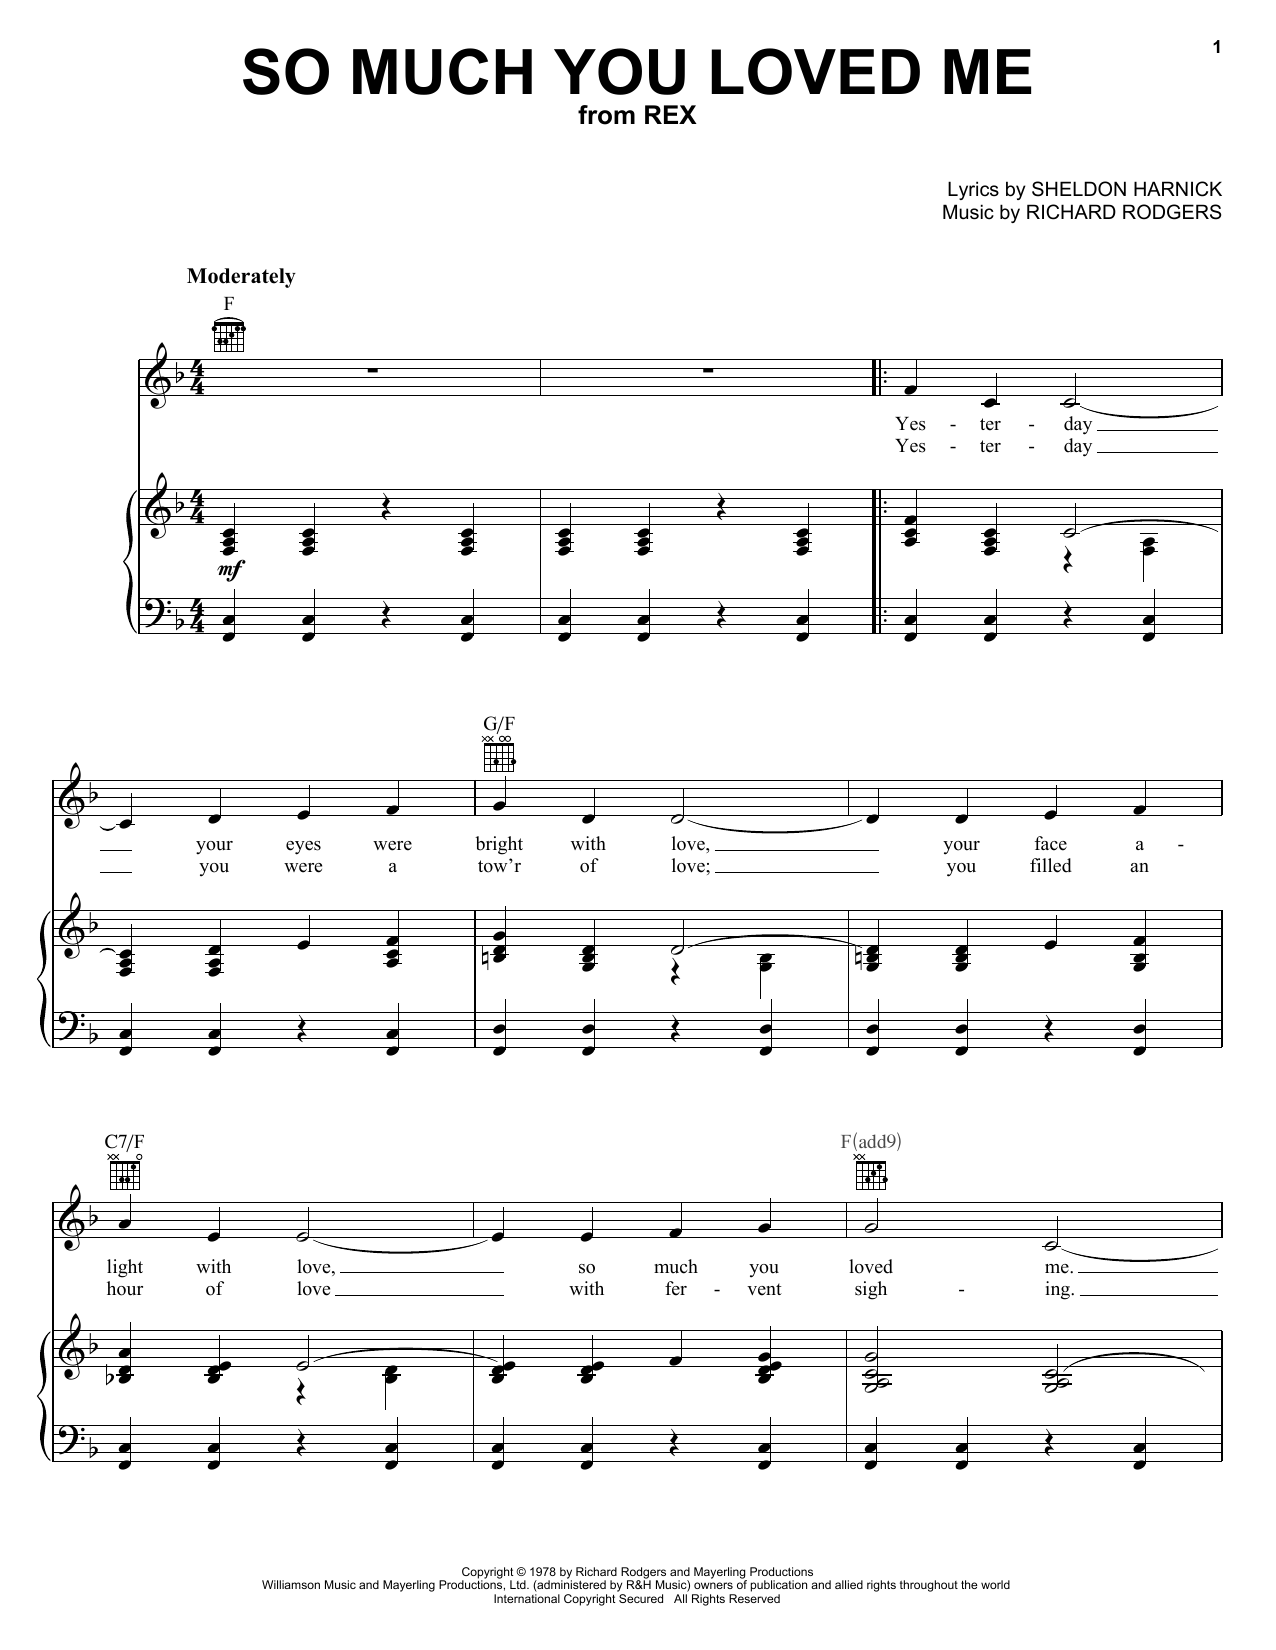 So Much You Loved Me sheet music for voice, piano or guitar by Sheldon Harnick